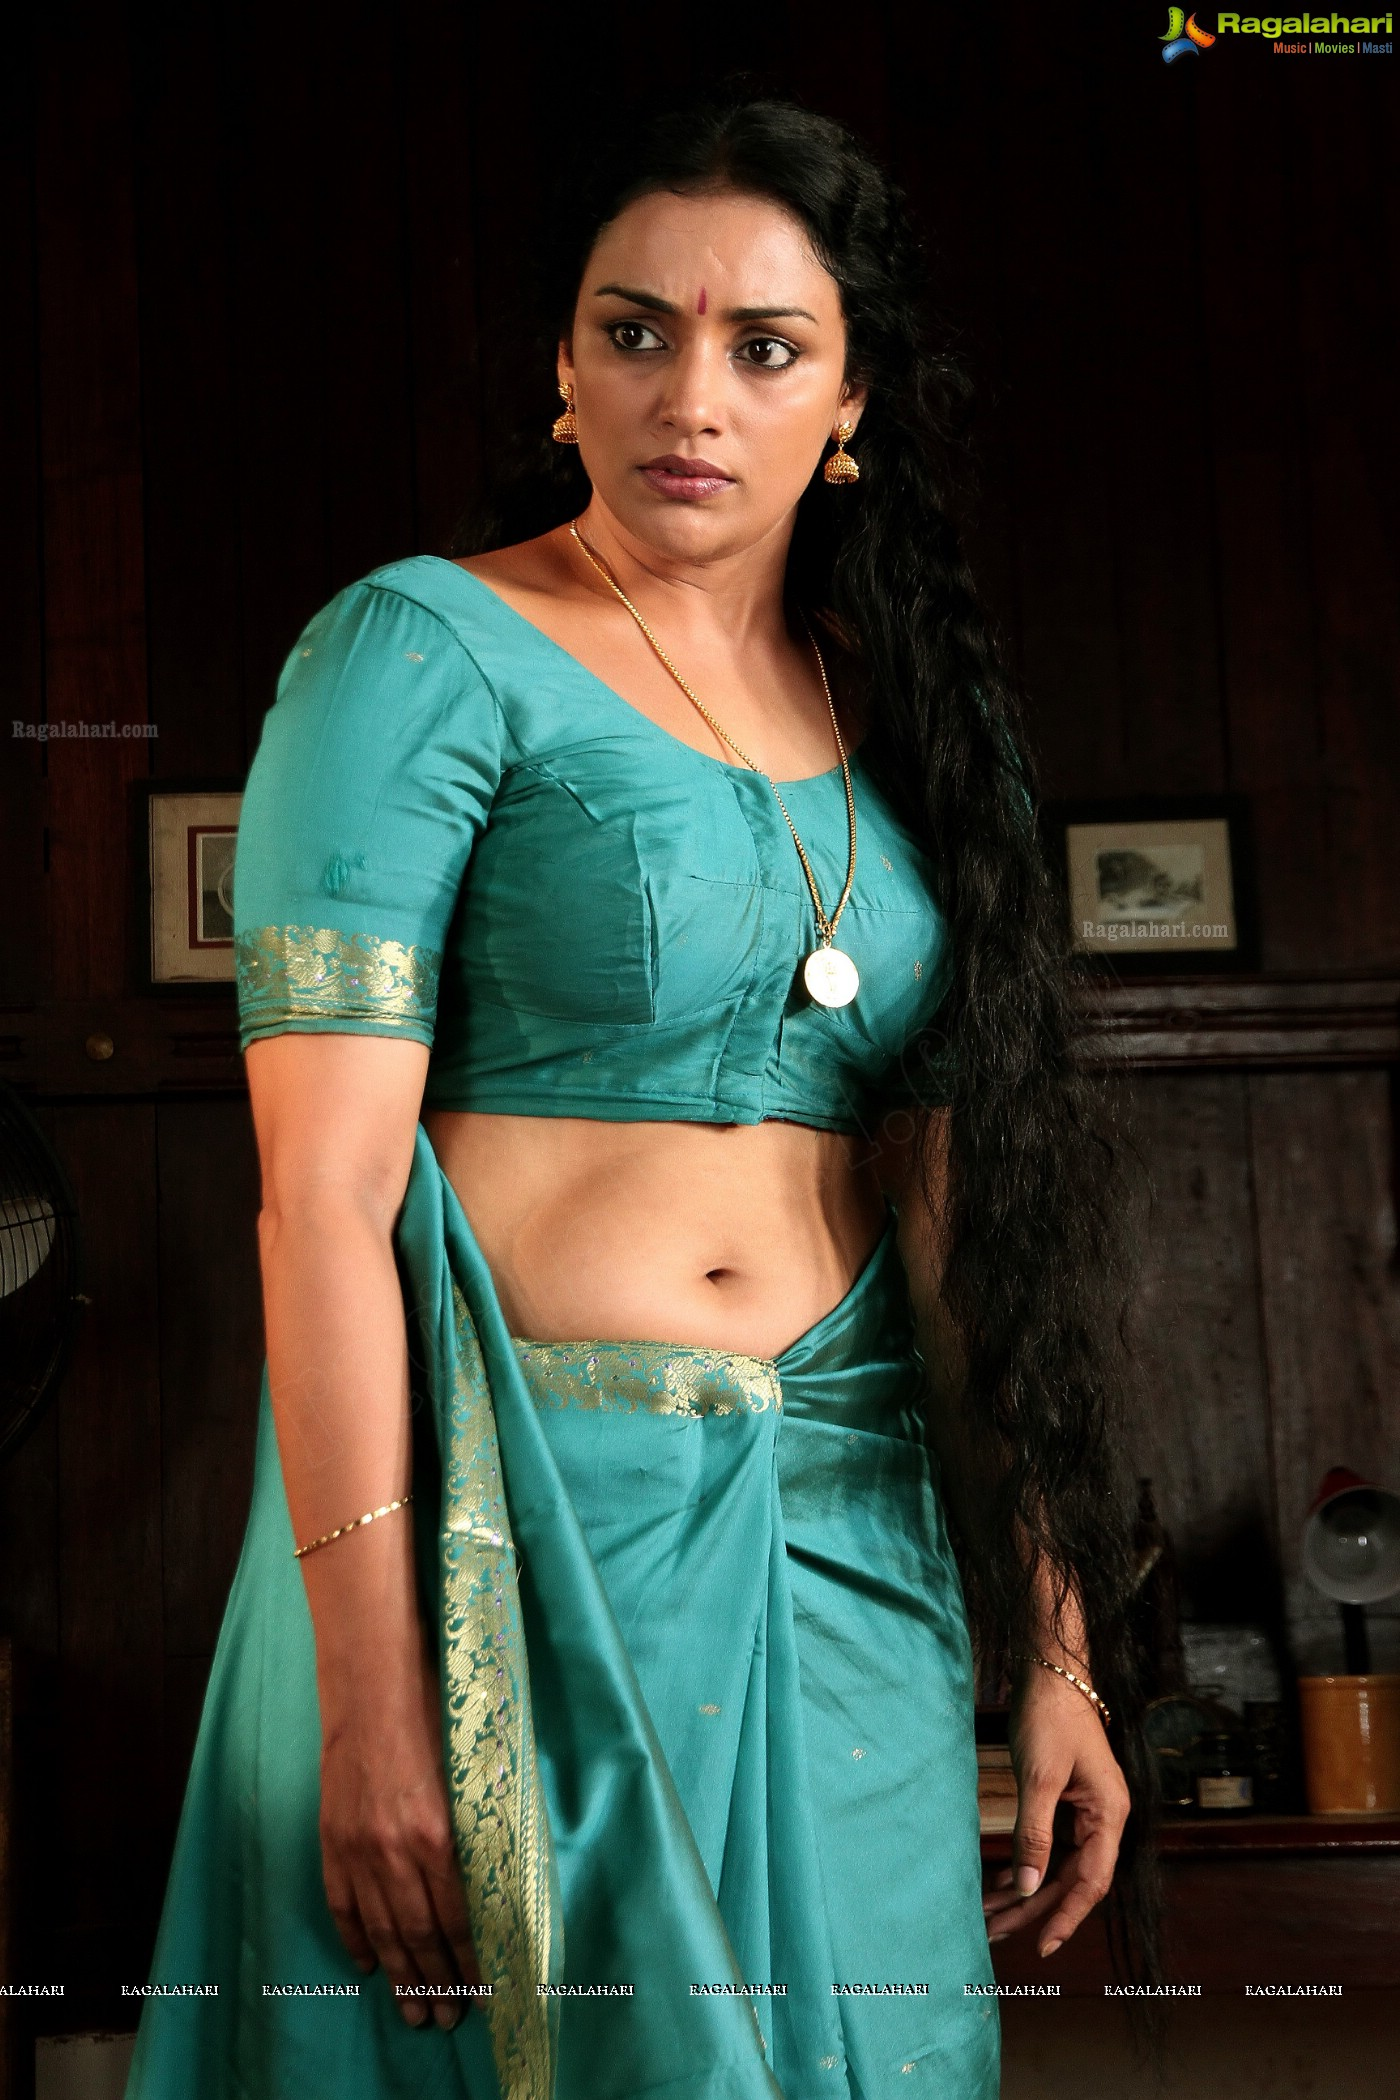 Swetha Menon Hot in Rathinirvedam HD HQ Wallpapers - Actress|Hot Pics|Wallpapers|Images|News ...